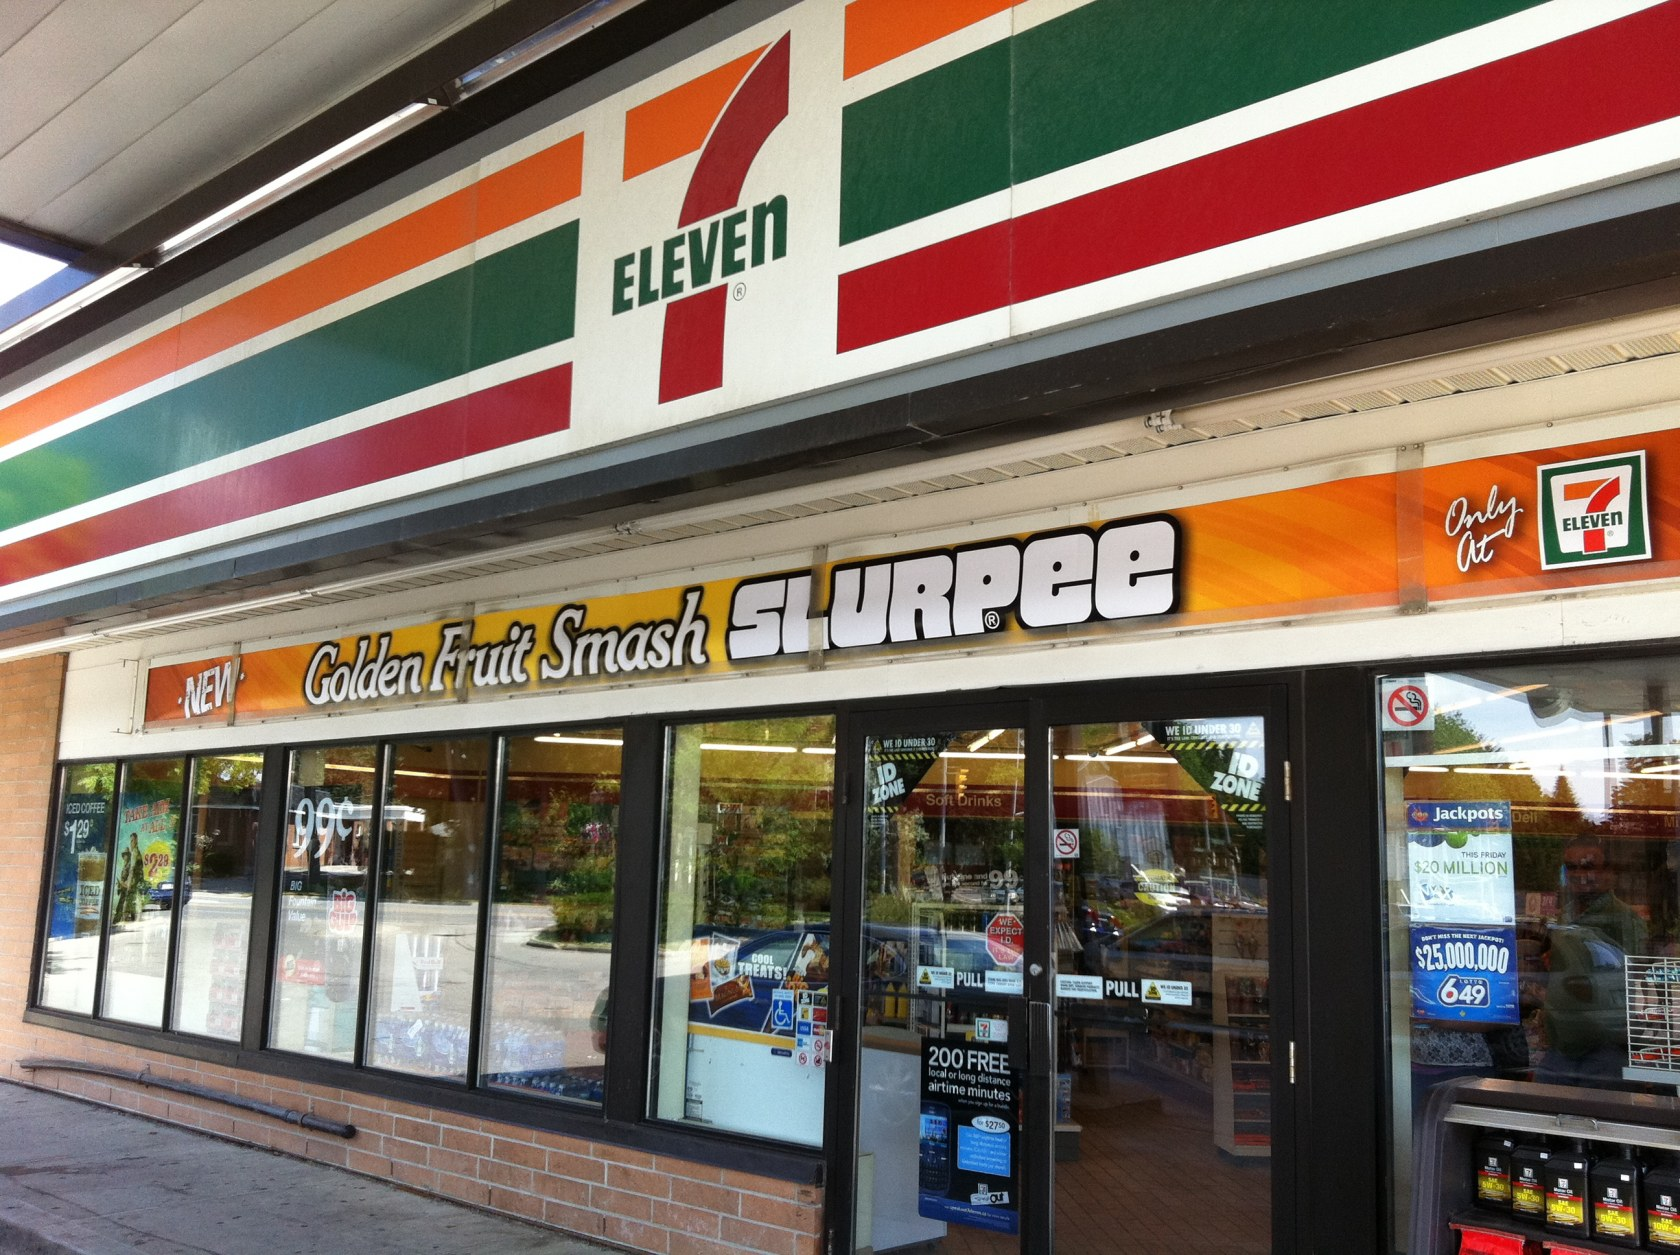 7-Eleven is bringing cashier-less payments to its stores